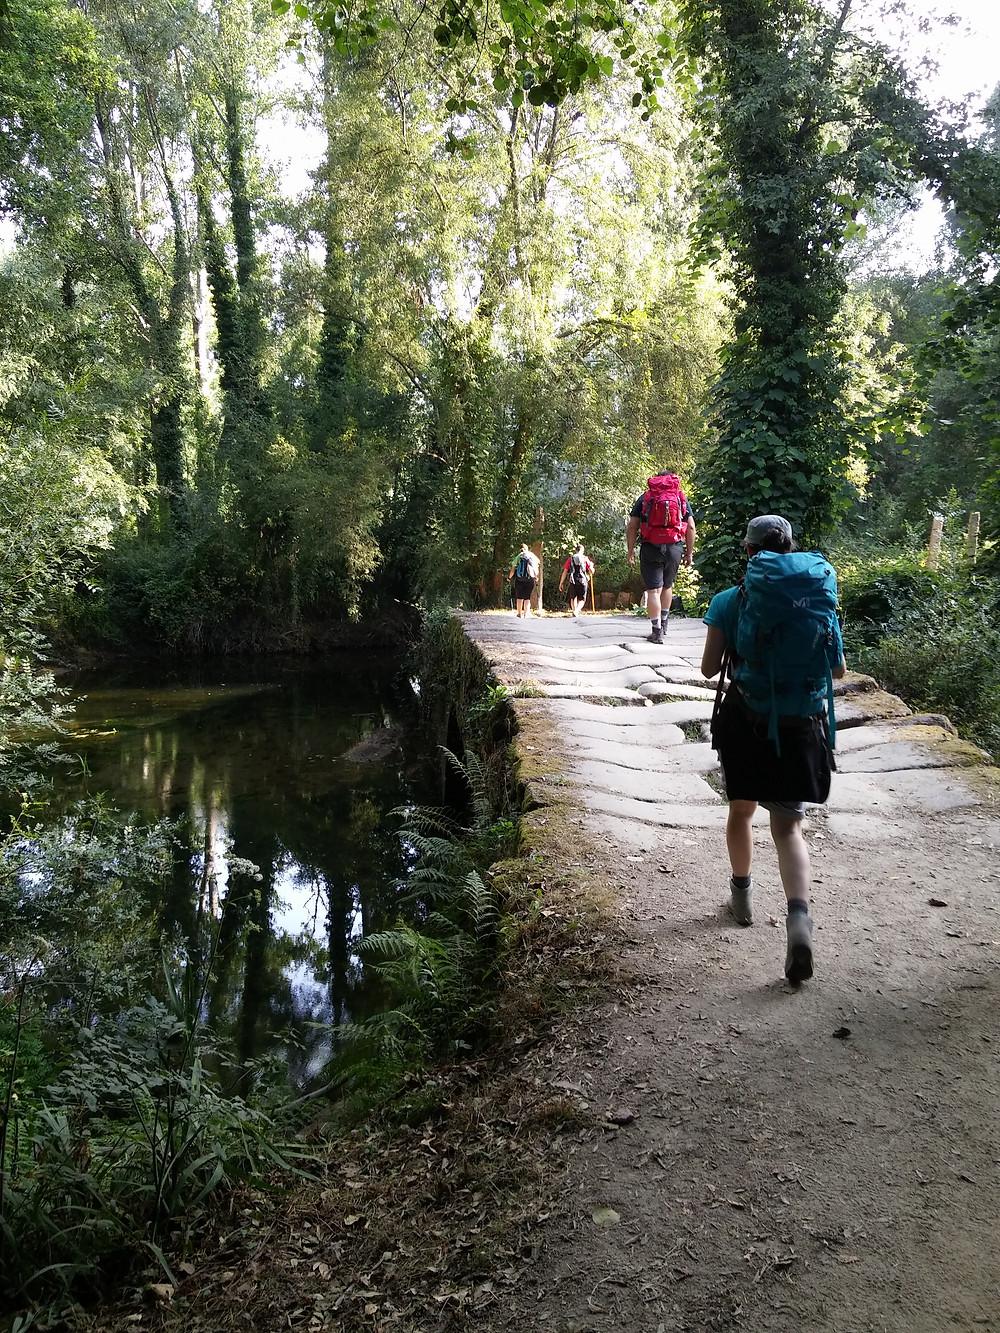 Walking through the Gallego forests with our little group